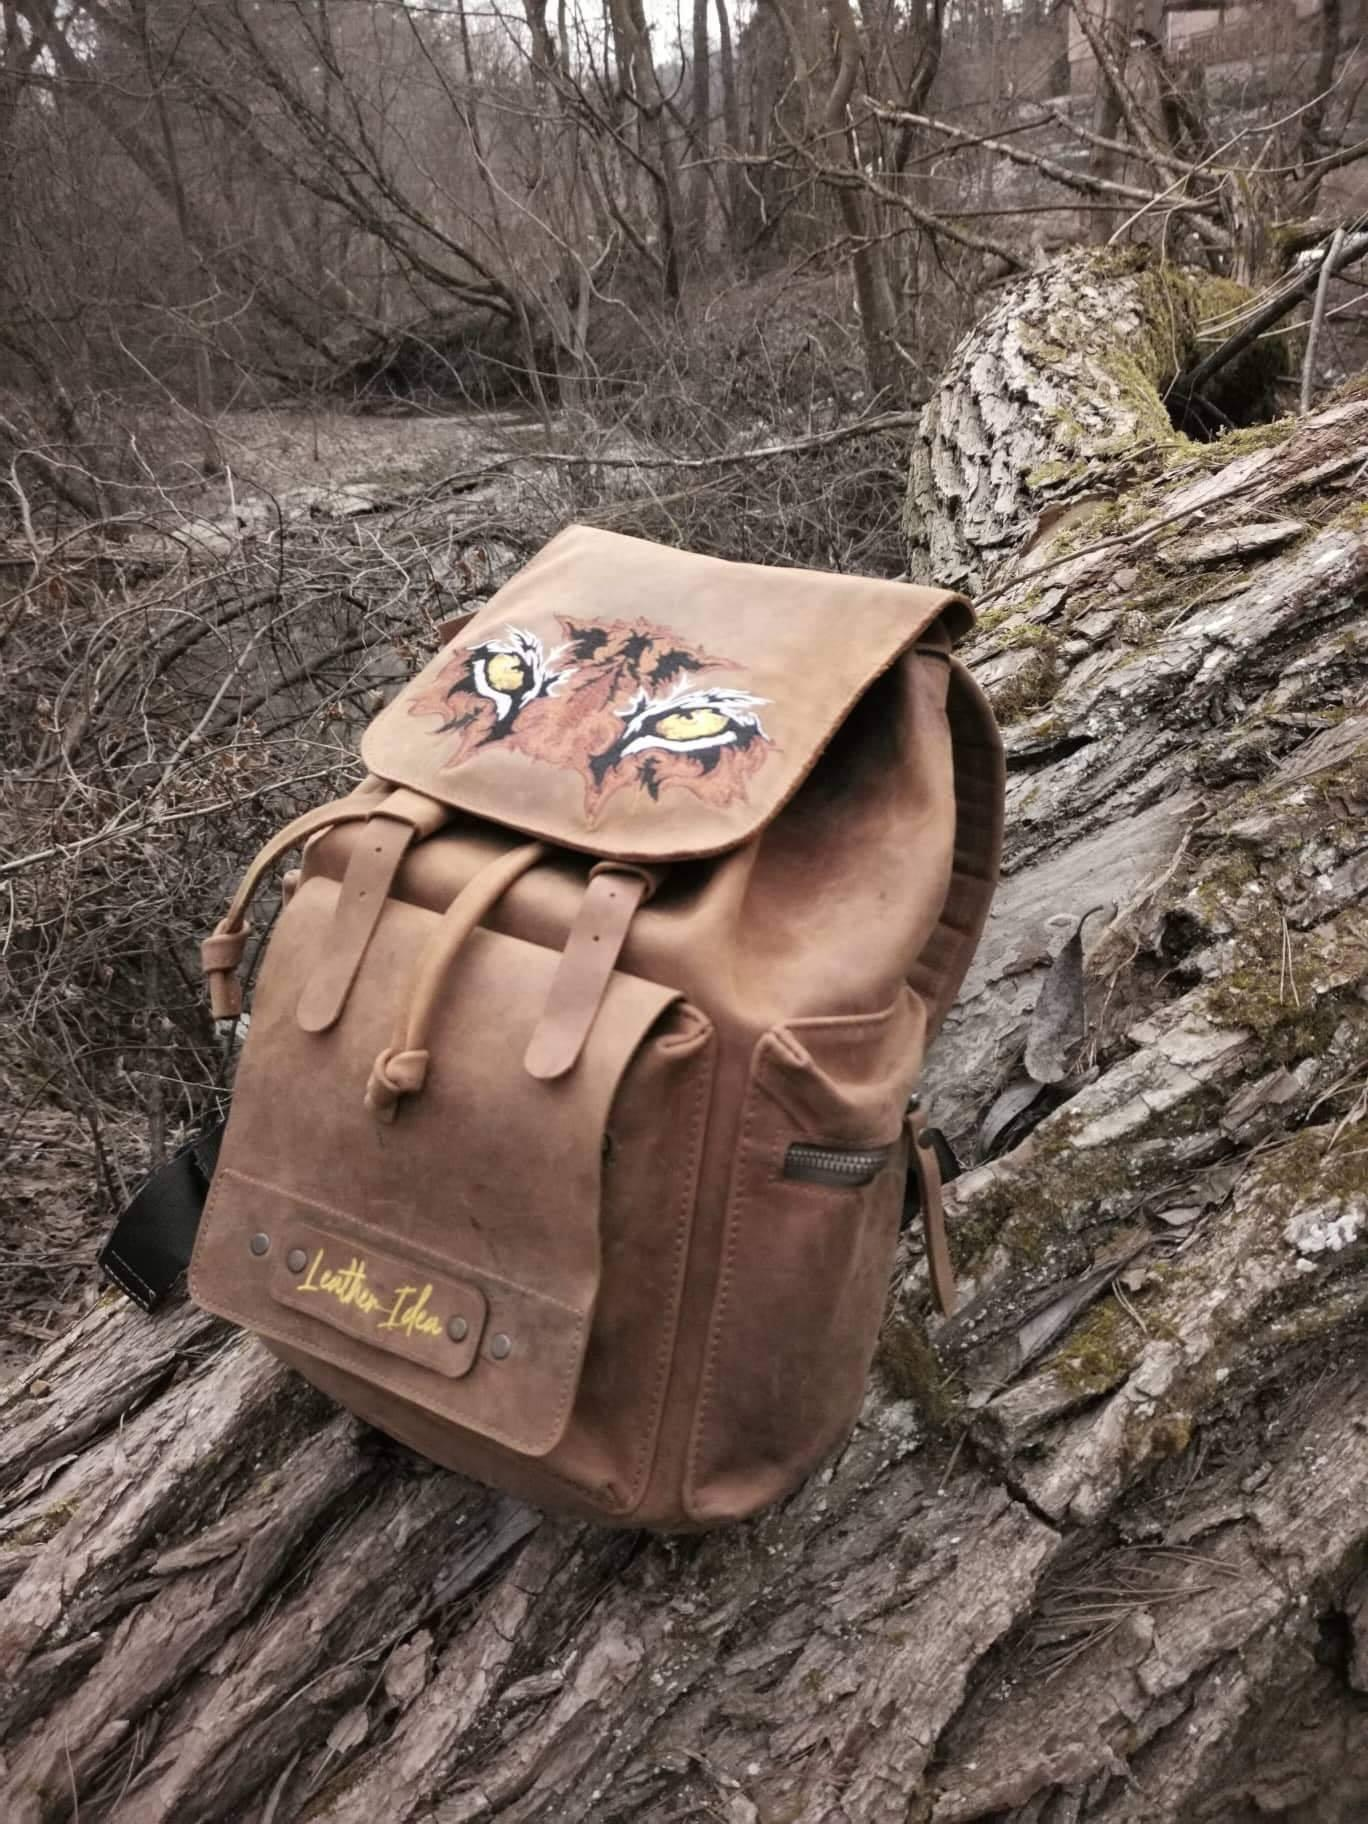 Embroidered backpack with Tiger eyes design